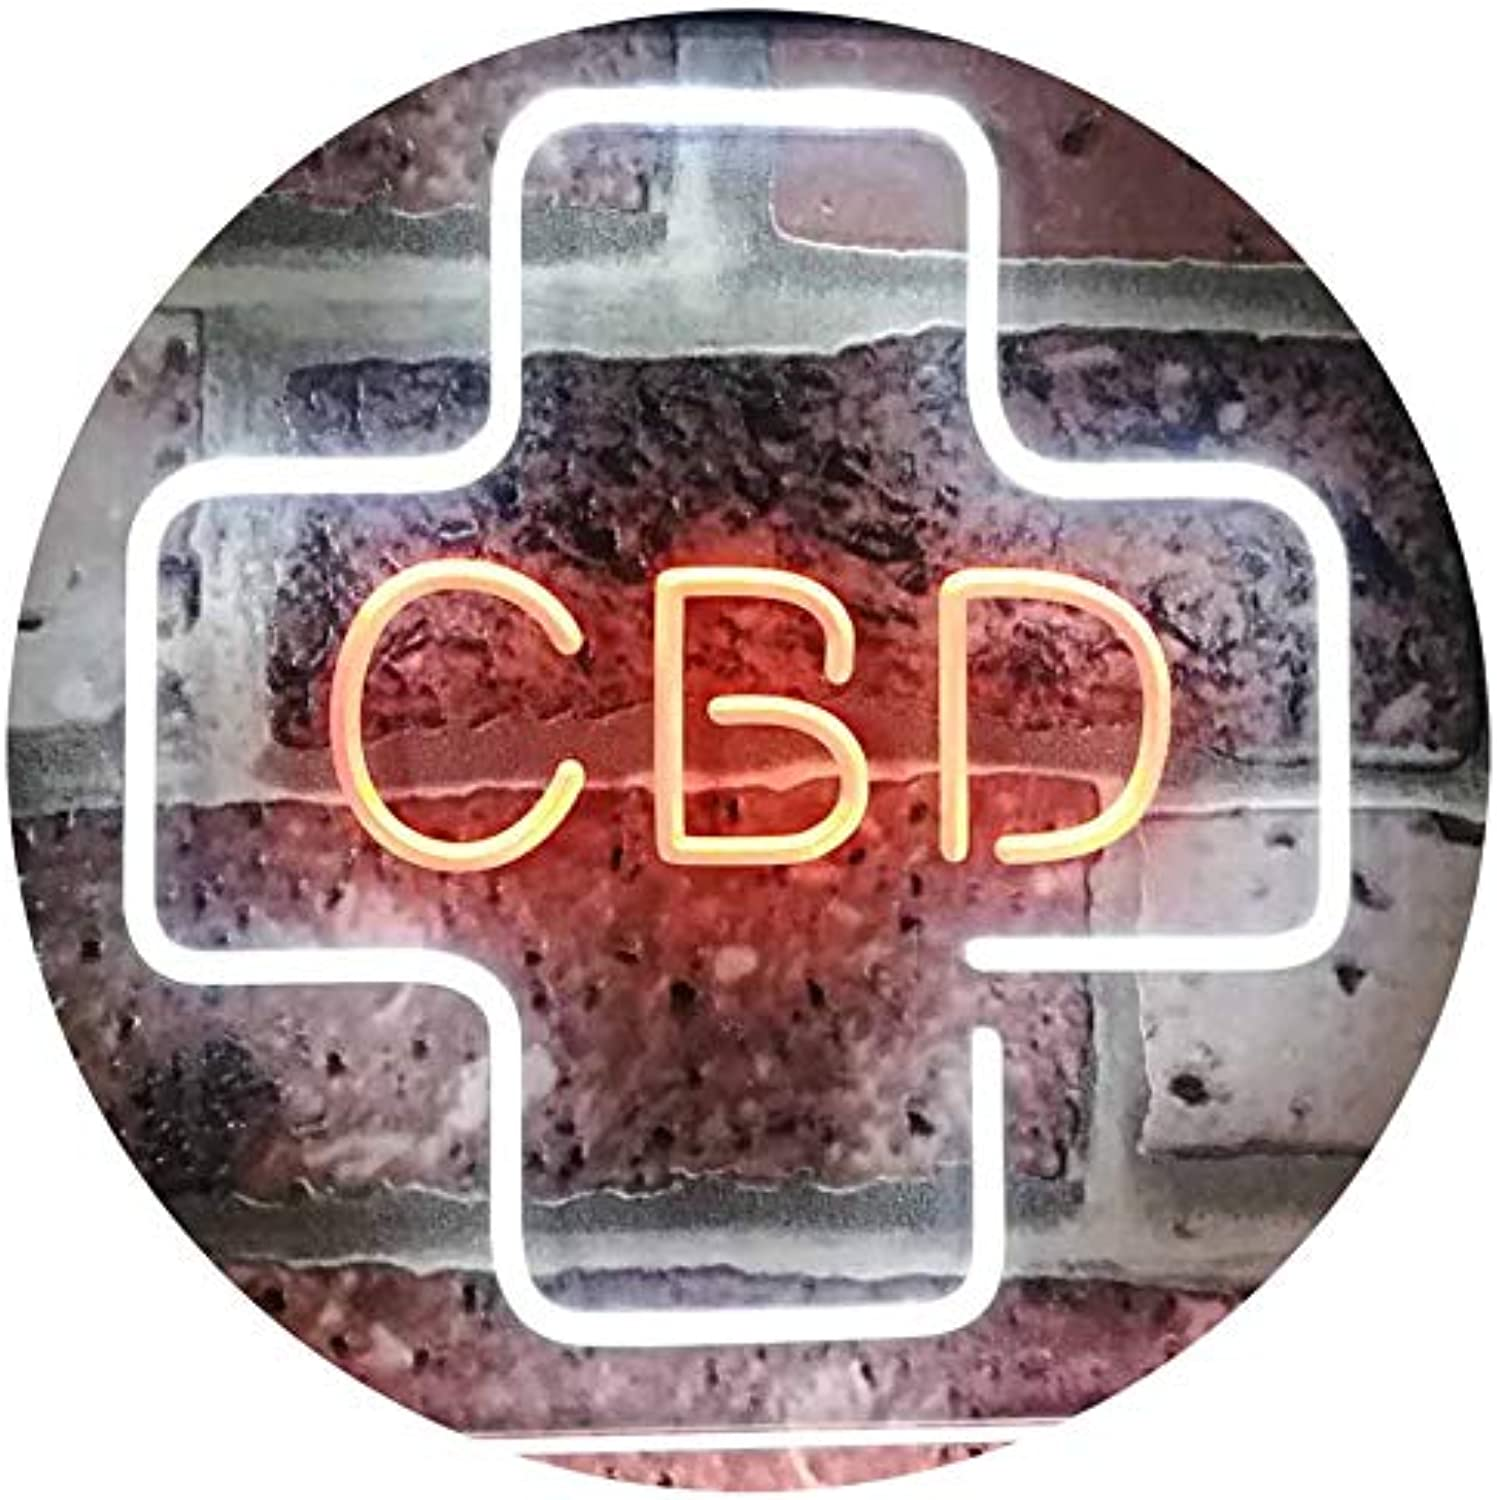 ADVPRO CBD Oil Sold Here Cannabidiol Medical Cross Indoor Dual Farbe LED Barlicht Neonlicht Lichtwerbung Neon Sign Weiß & Orange 400mm x 300mm st6s43-i3083-wo